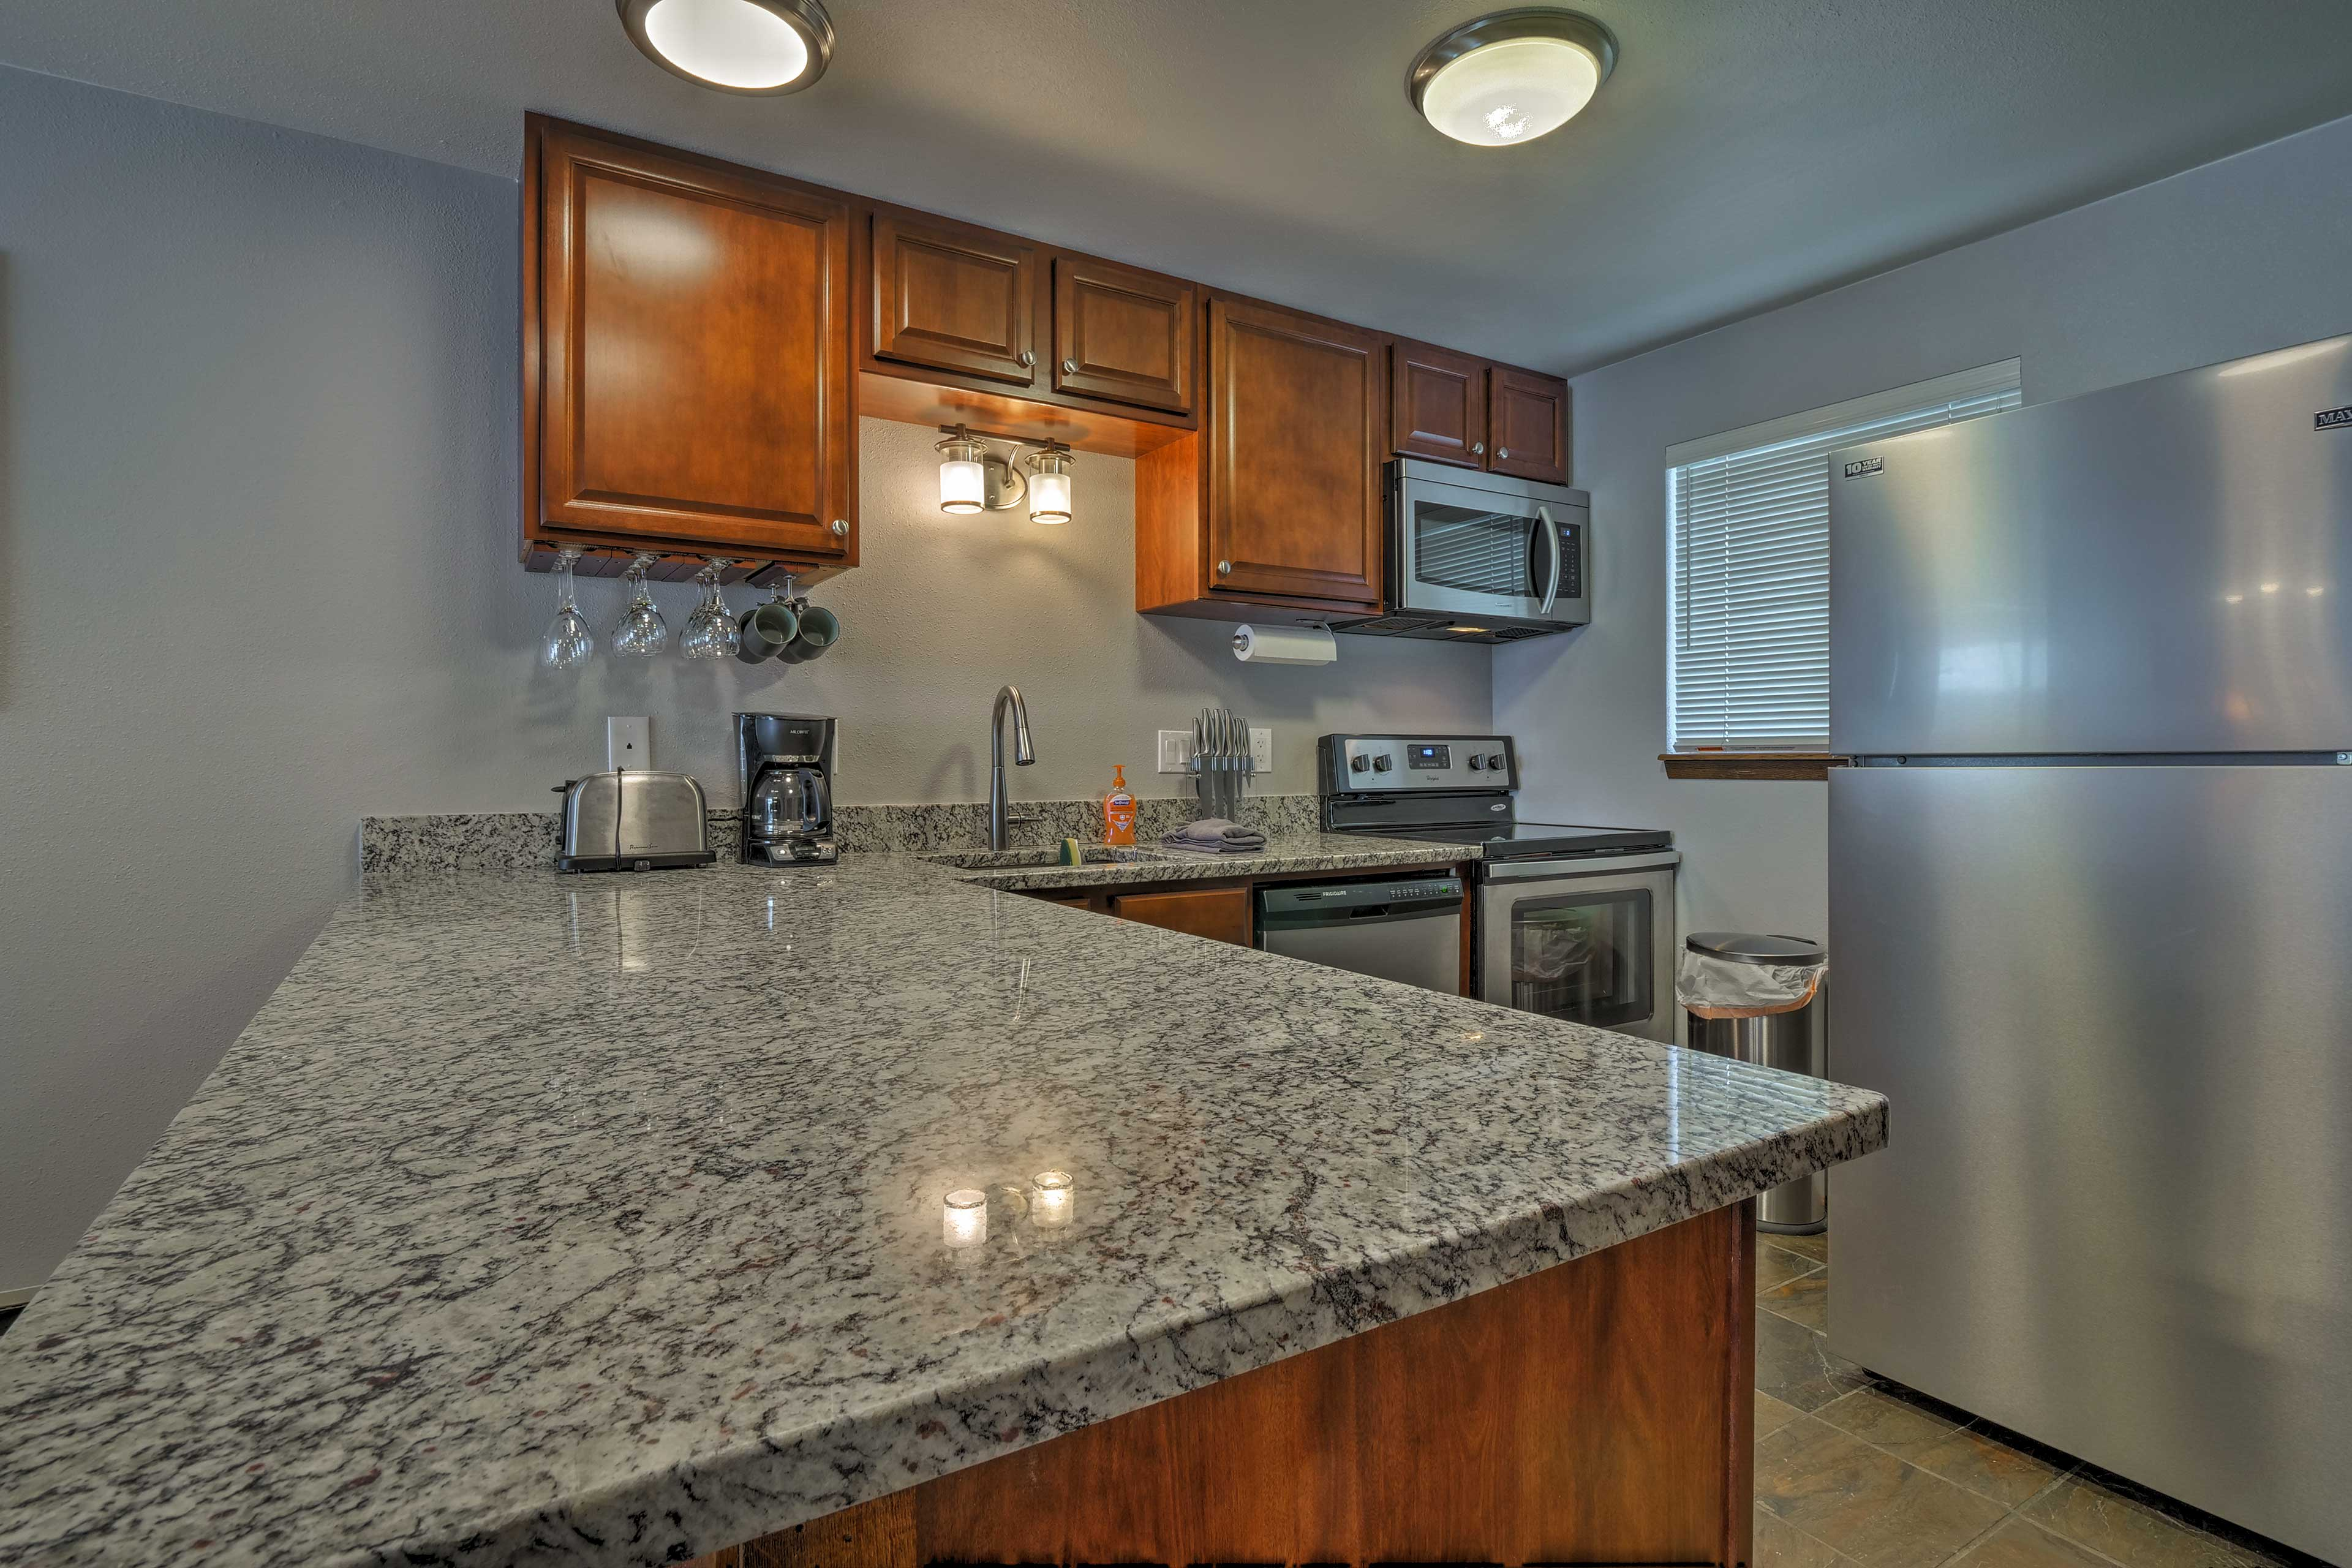 The fully equipped kitchen features granite counters and new cabinets.